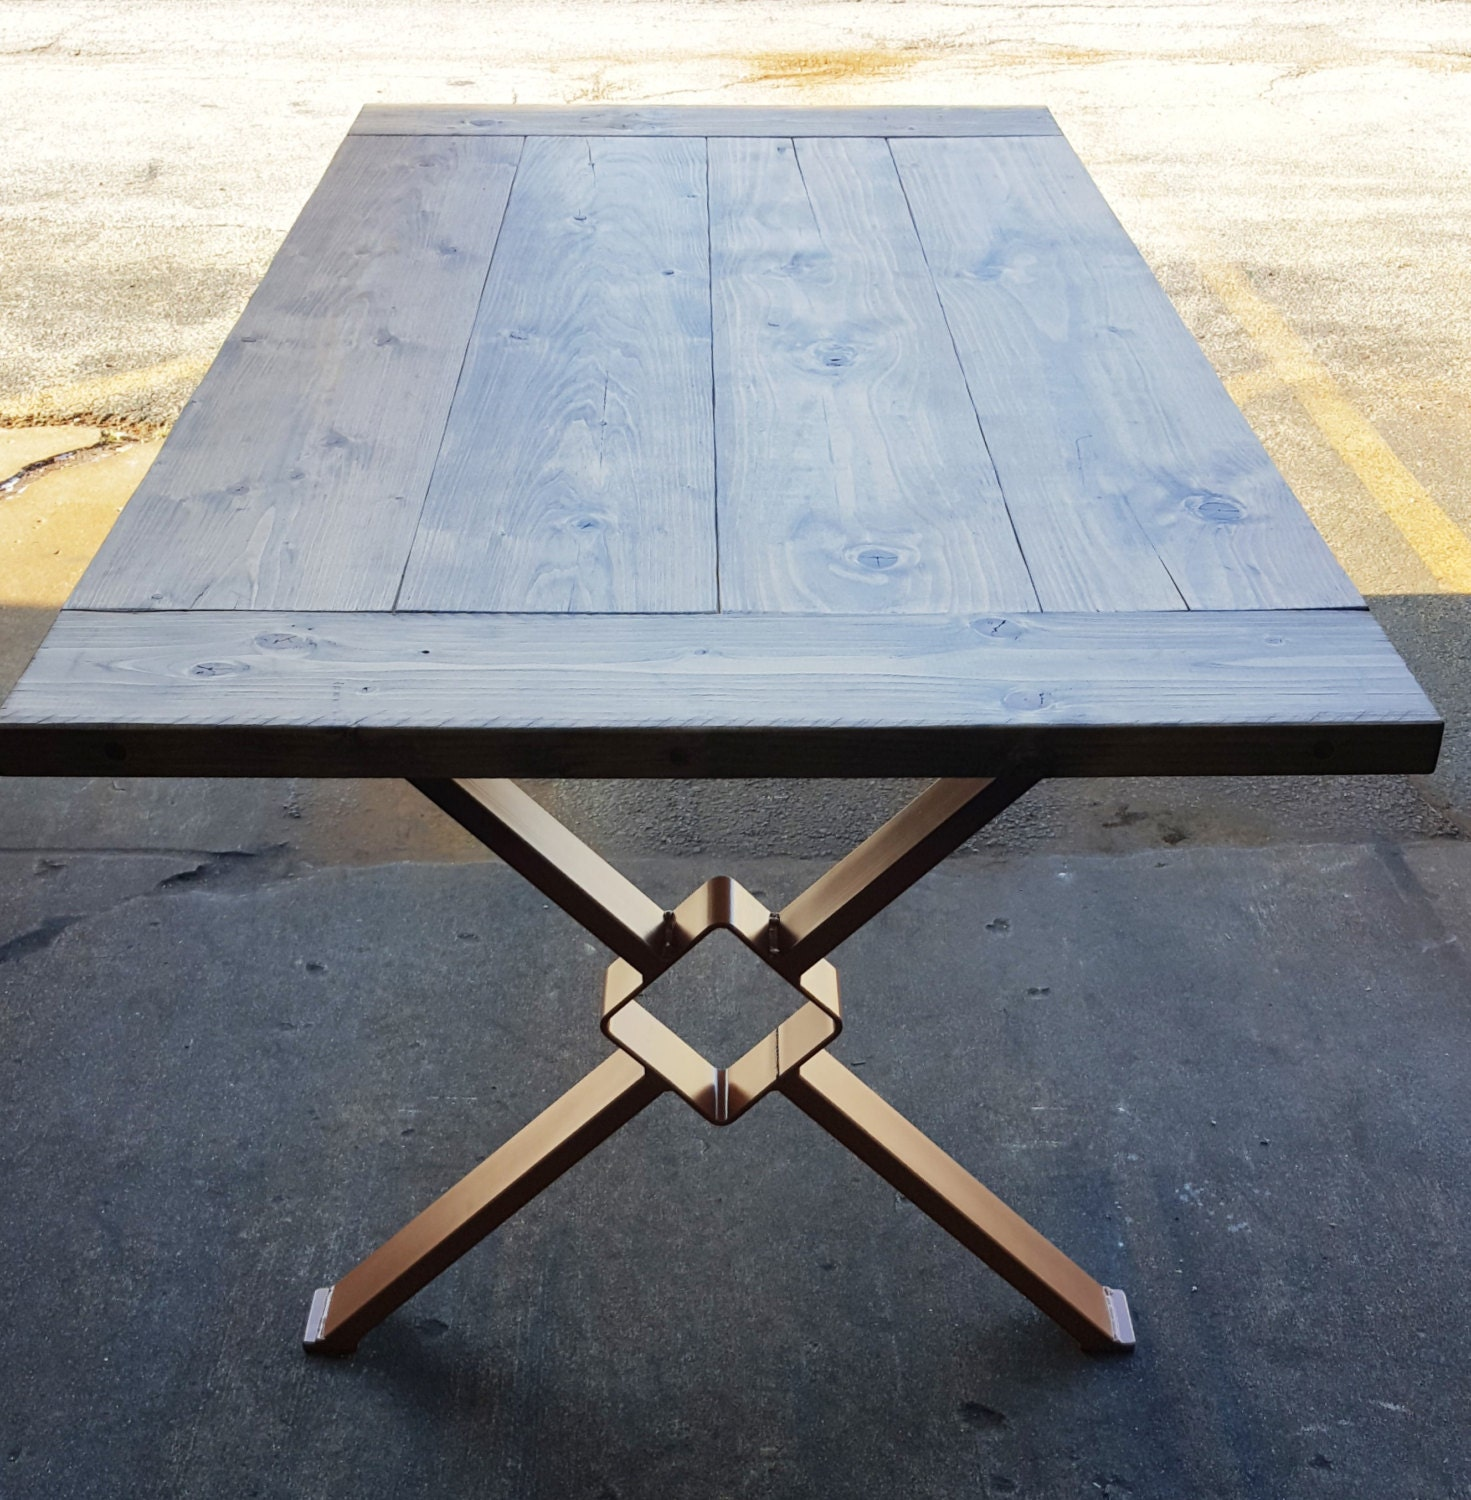 Modern dining table x legs model tt11 industrial legs - Table a manger industrielle ...